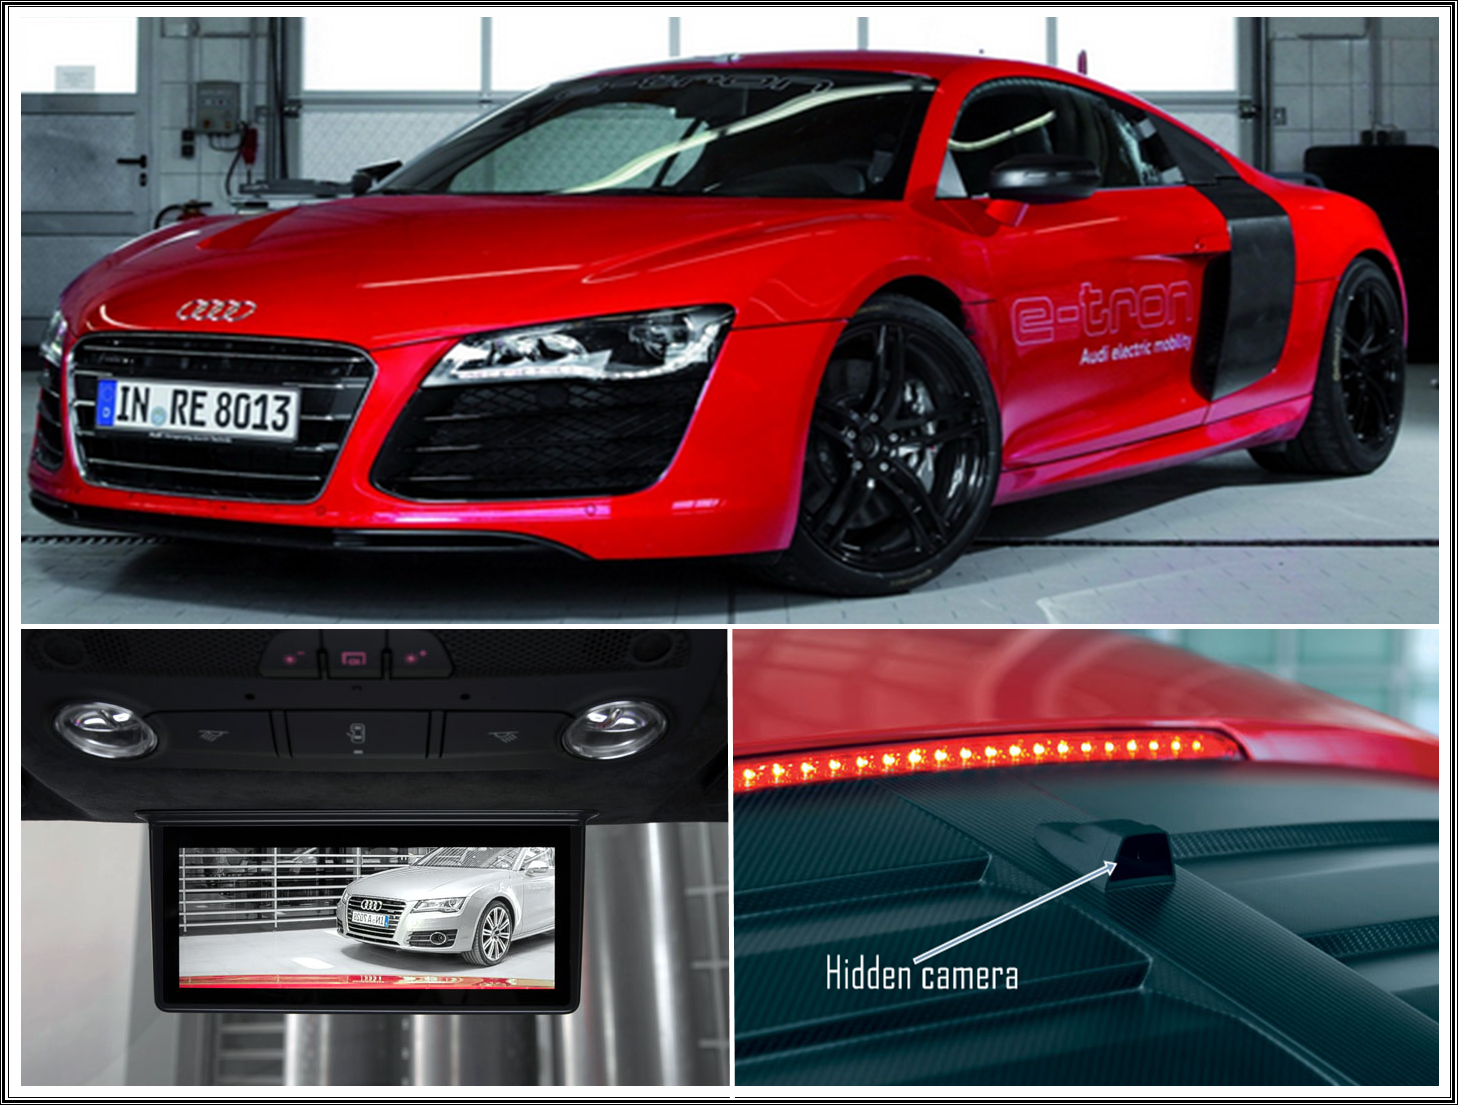 New Cars Audi R8 E Tron With Digital Rear View Mirror